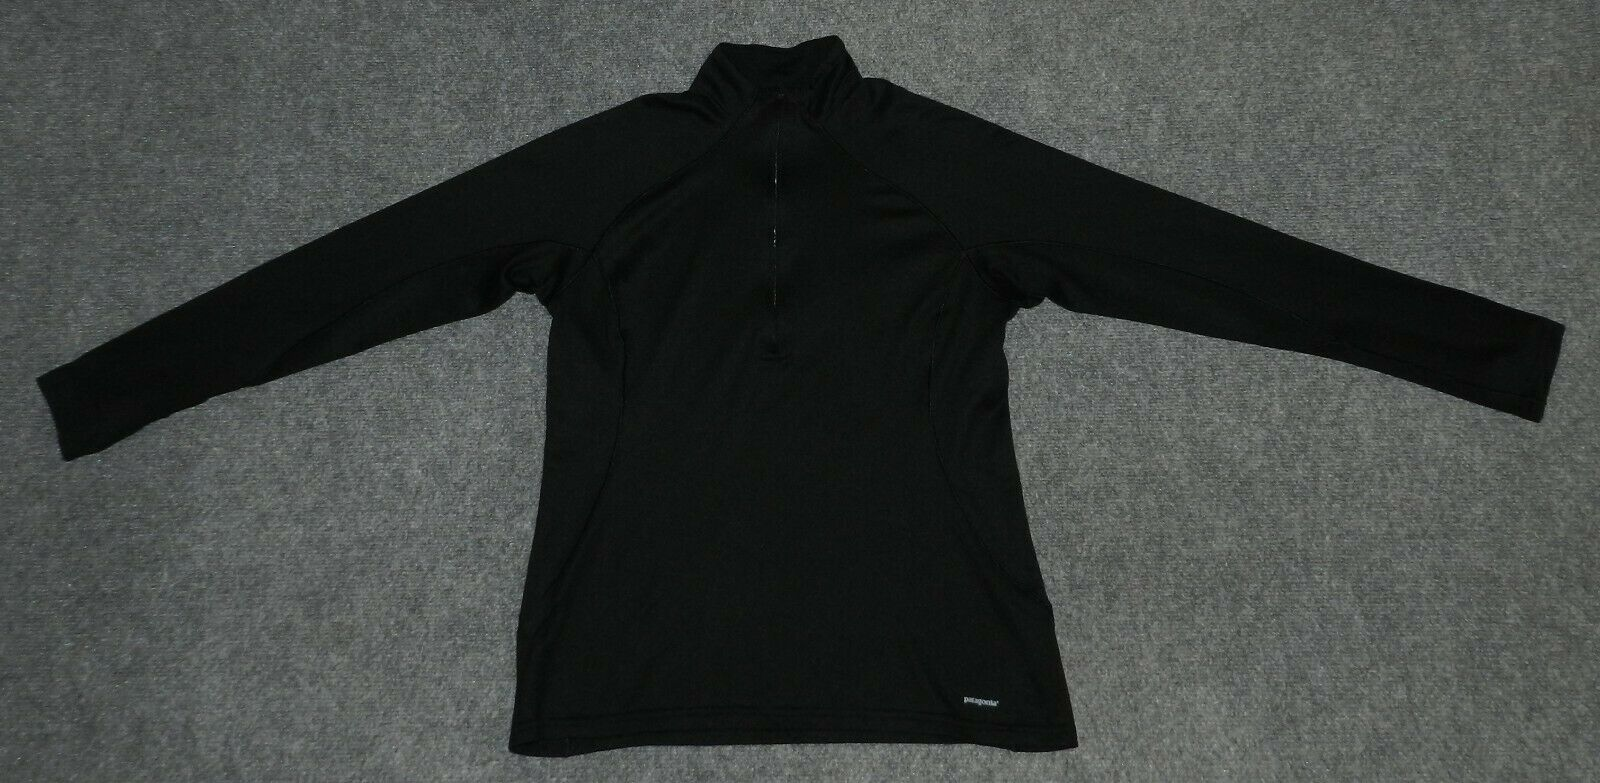 PATAGONIA W'S CAPILENE 3 MIDWEIGHT 1/4 ZIP PULLOVER 44451 Black sz L Pullover